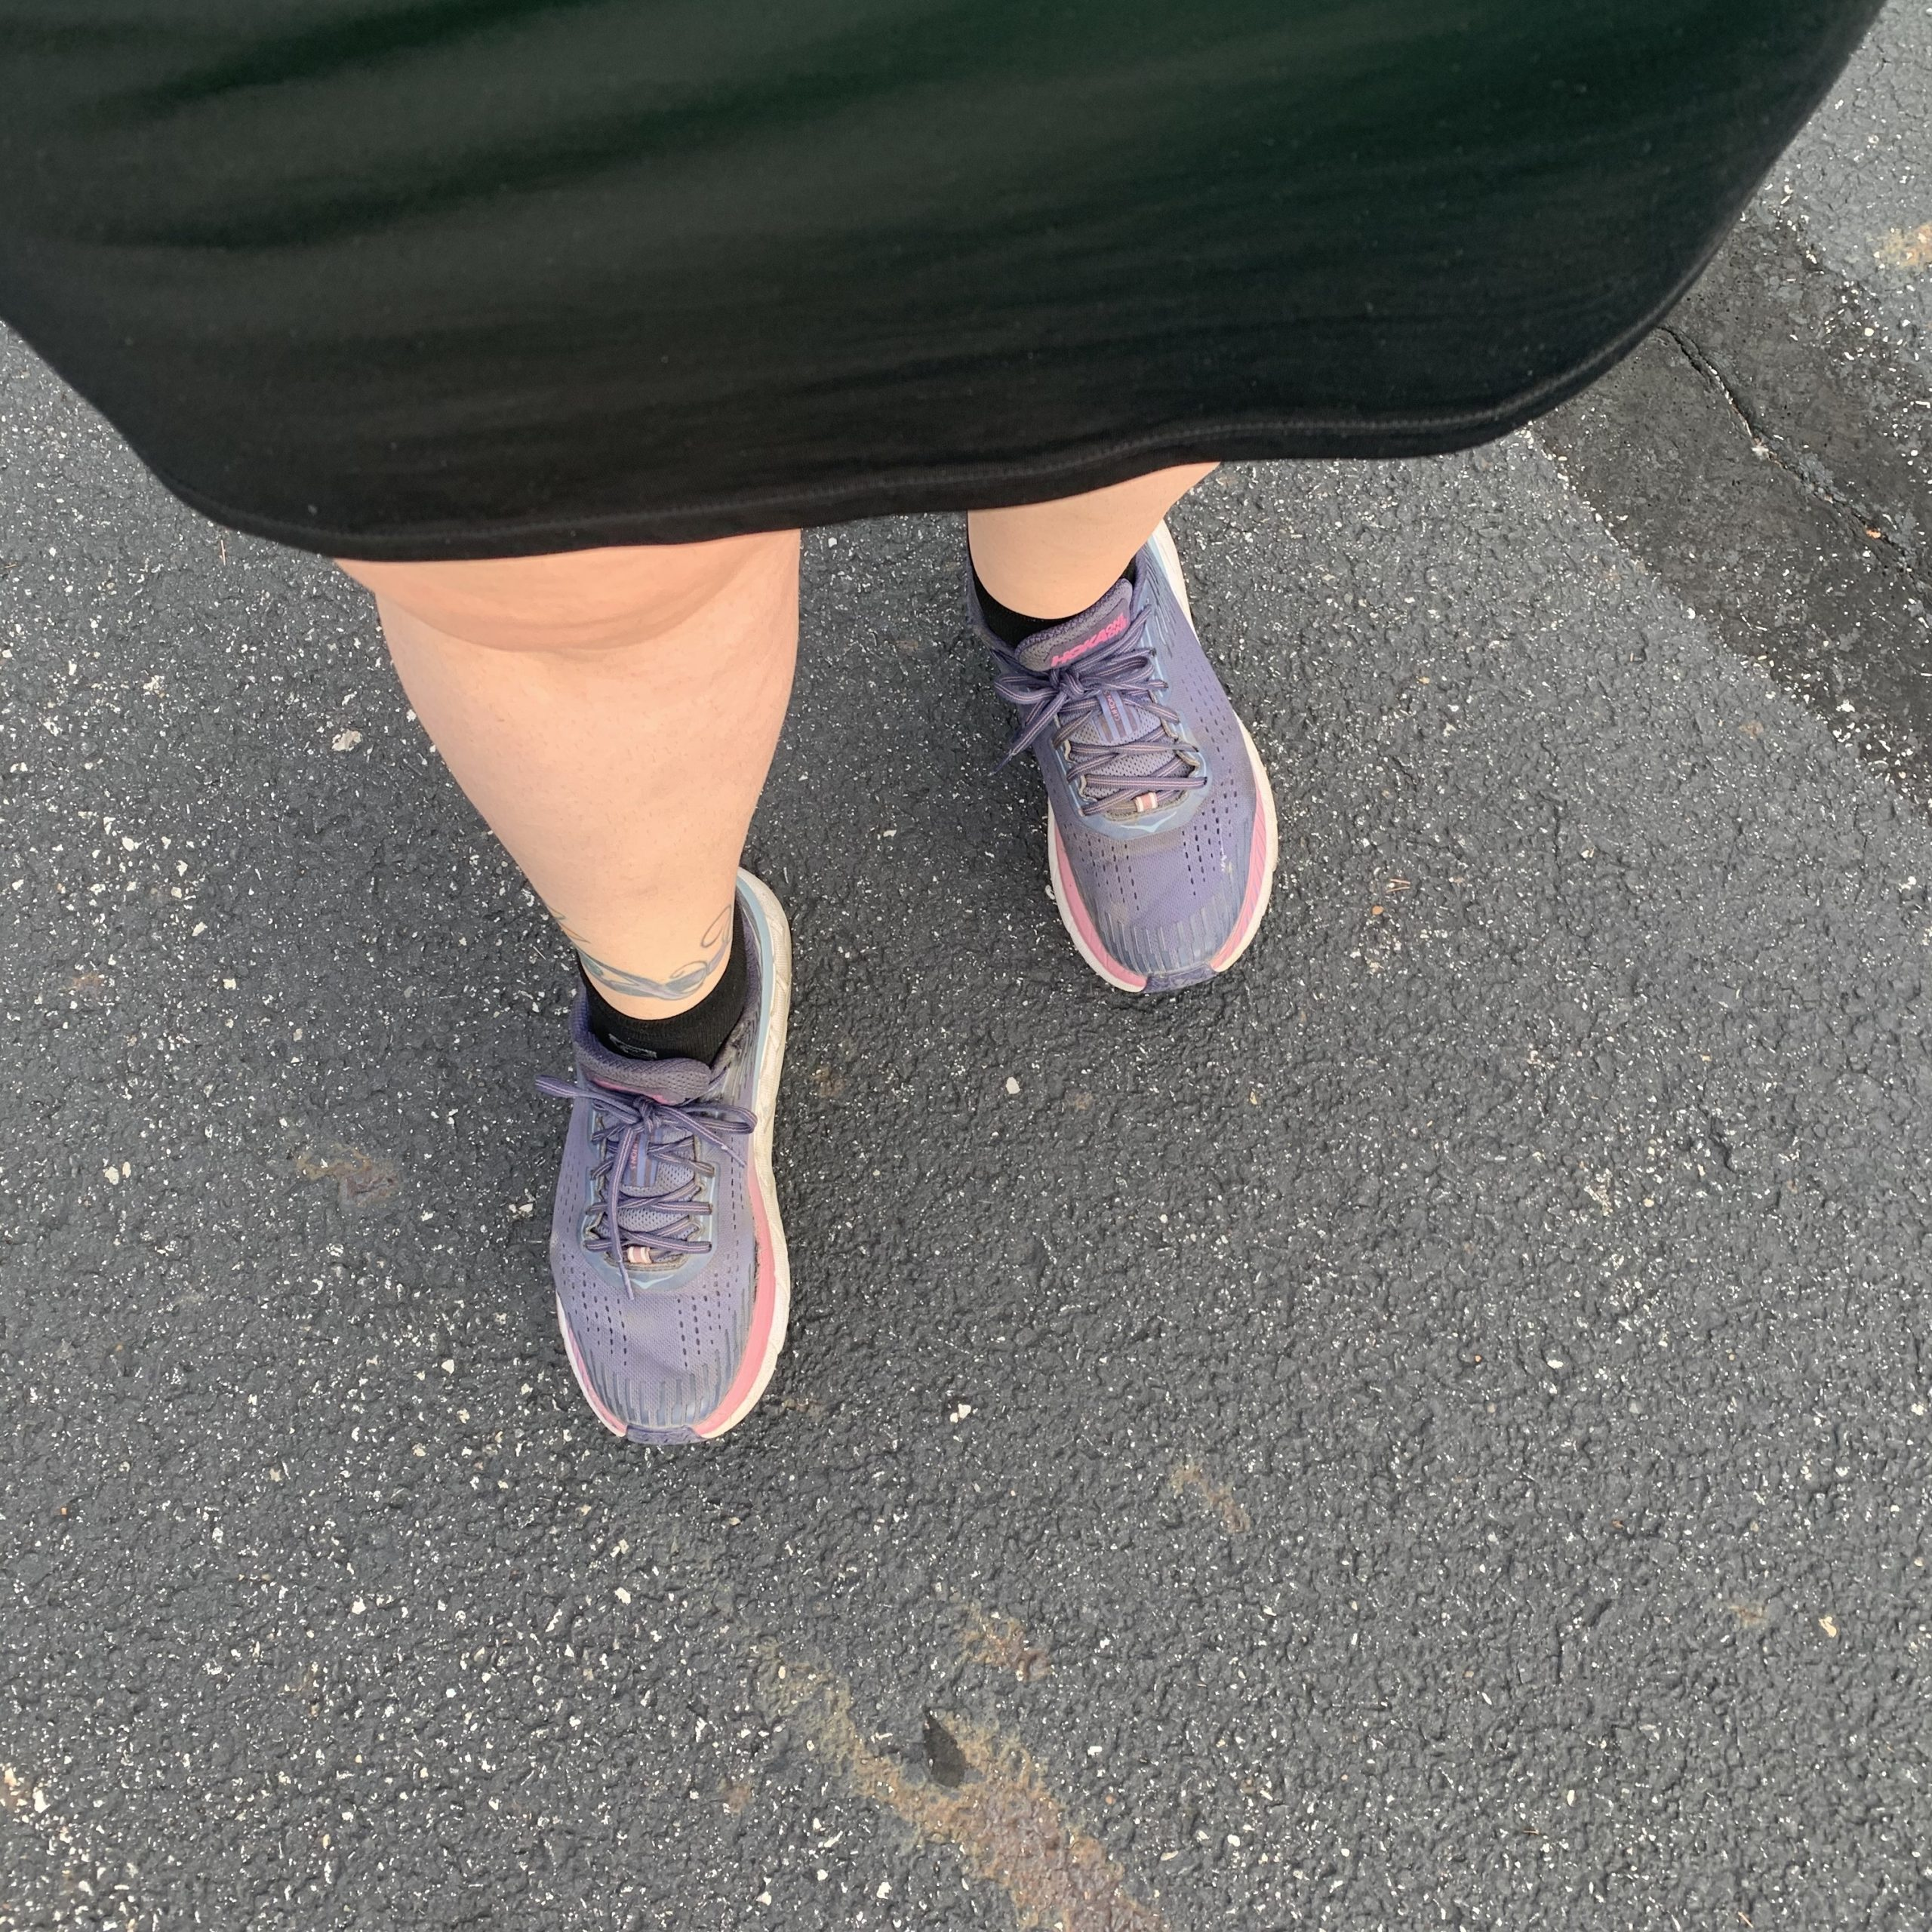 Downshot of a woman walking someone walking in running shoes on the pavement.